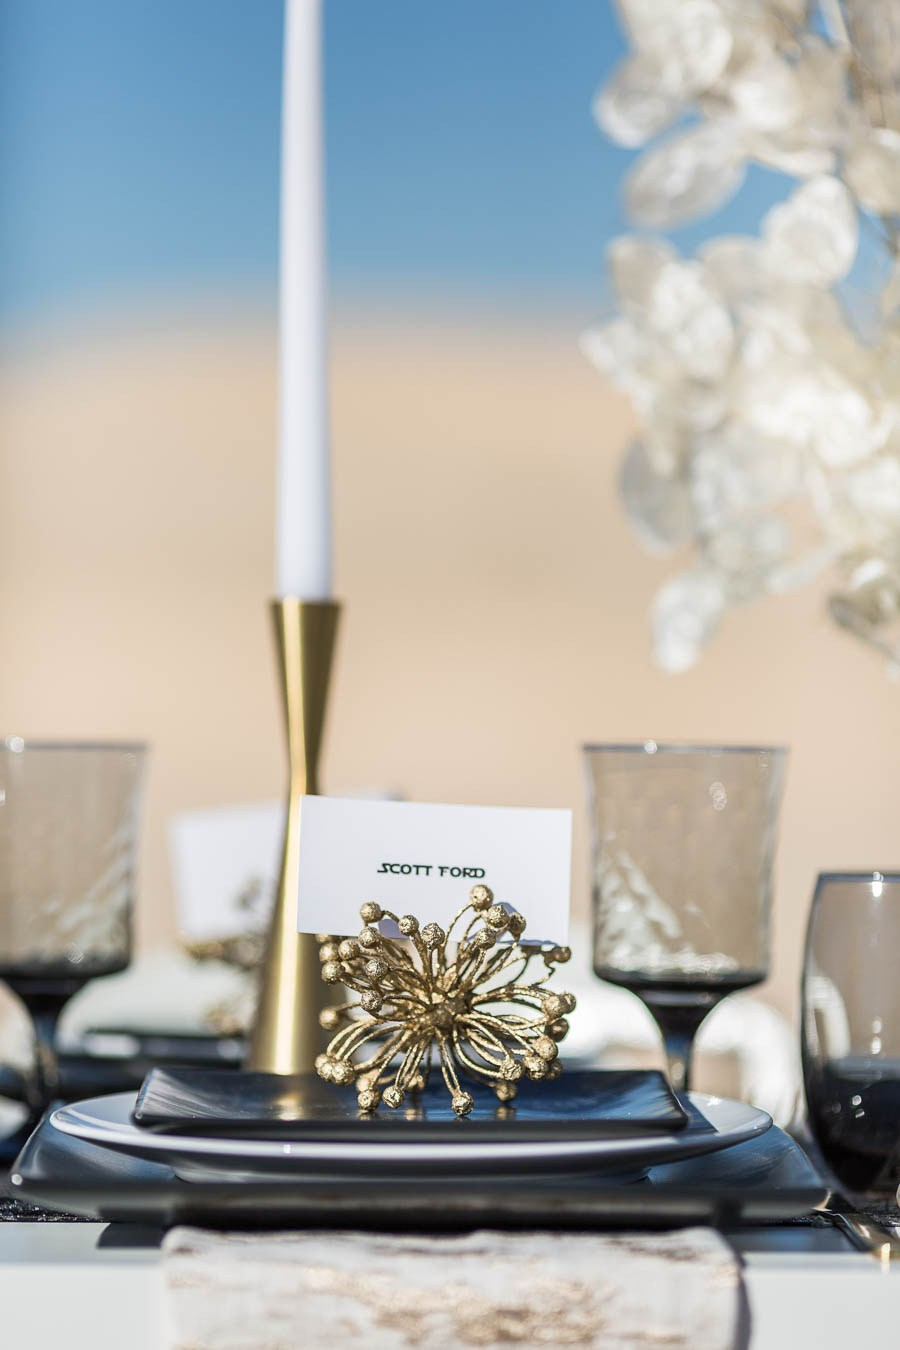 The table featured black plates, glasses and lots of gold touches for a chic feel